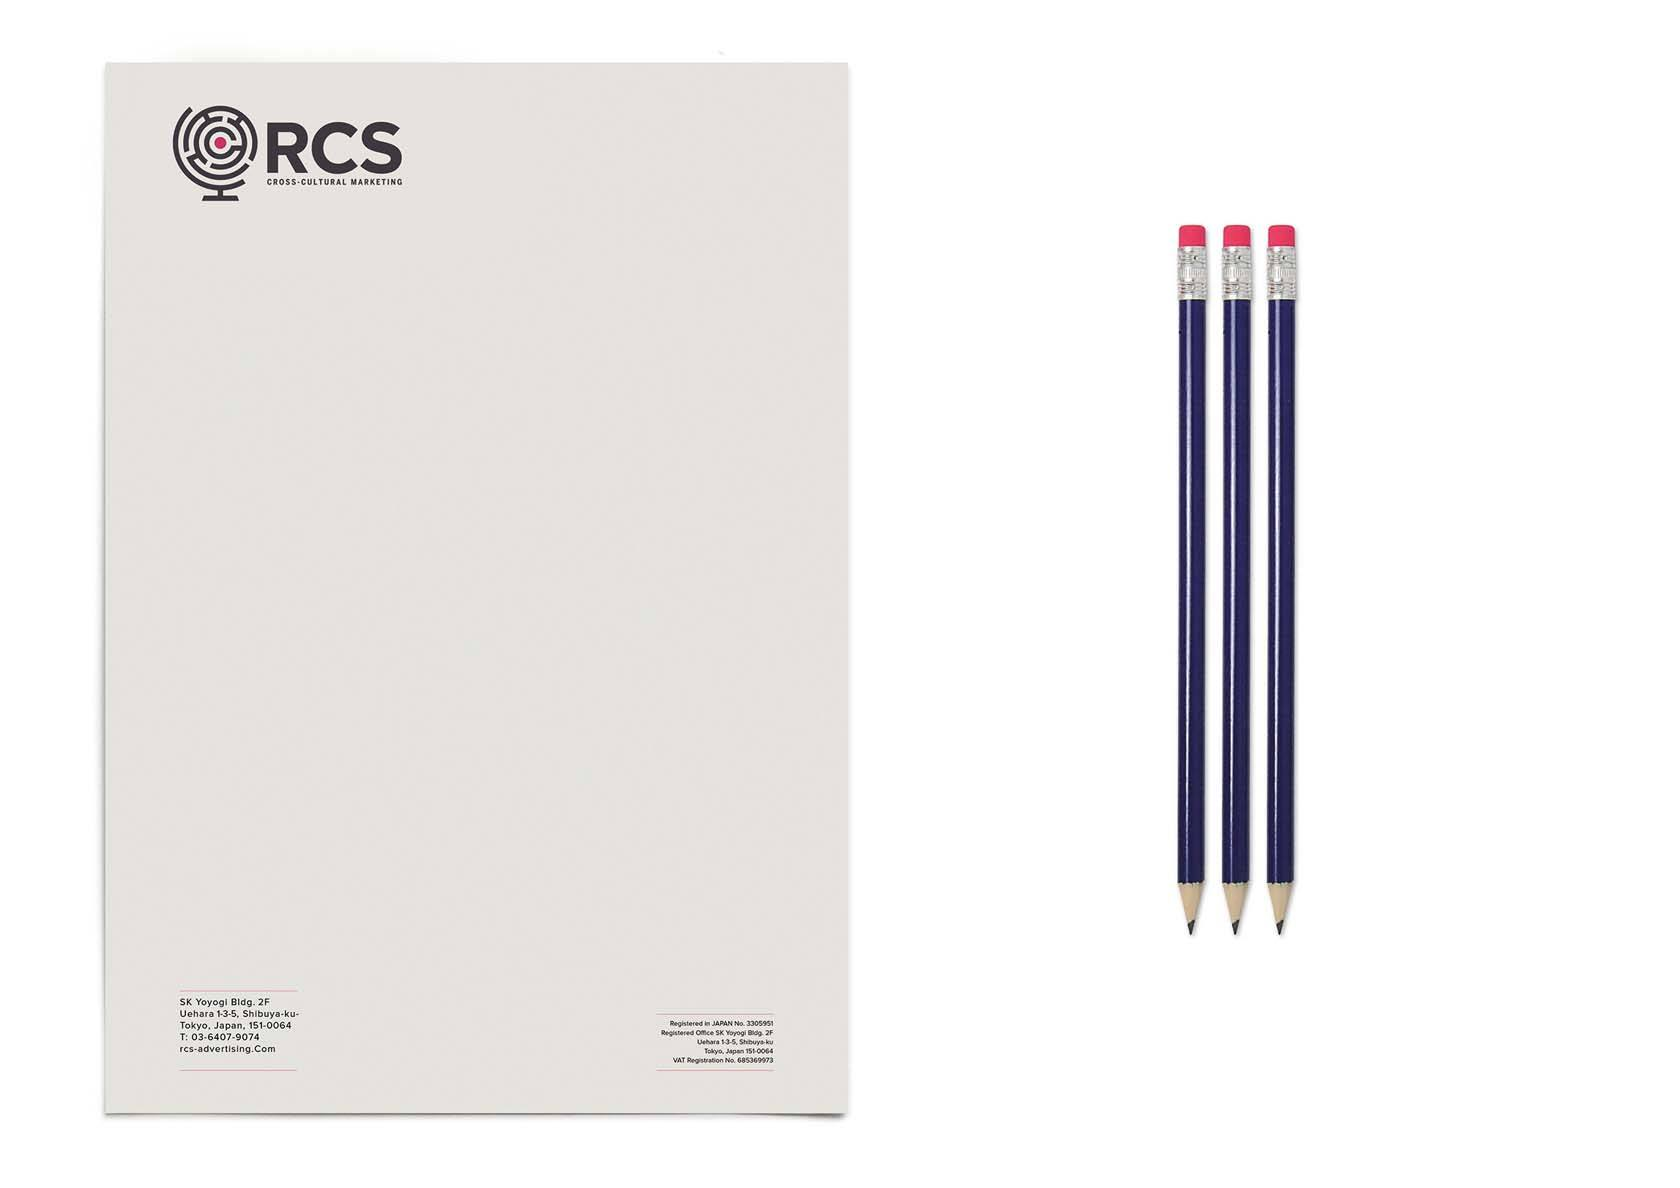 RCS_STATIONERY_WMH image